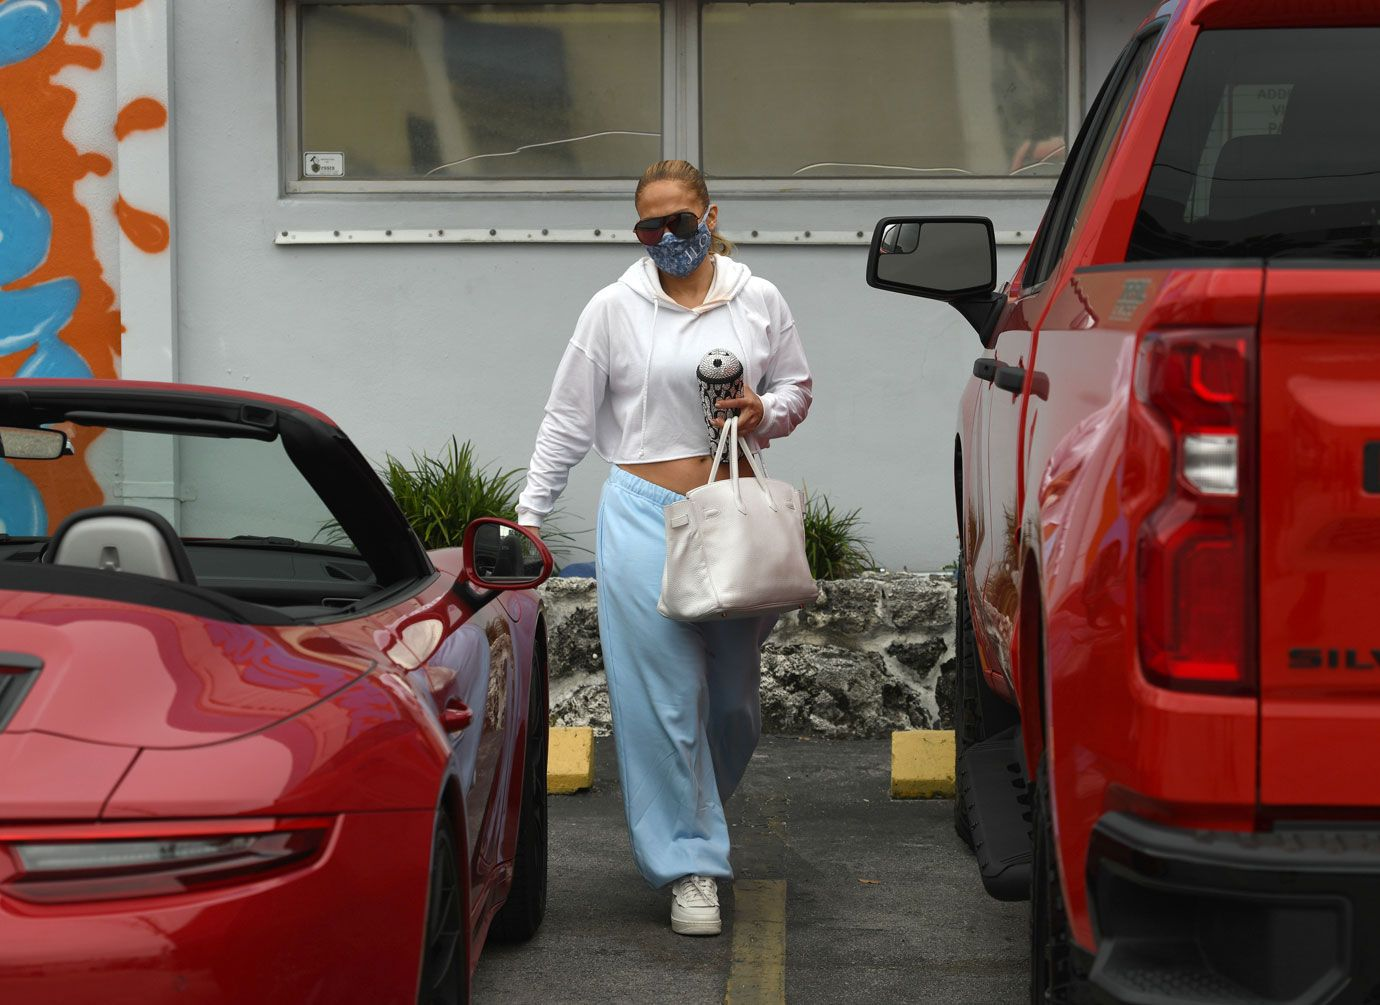 jennifer-lopez-leaves-gym-lunch-with-friends-02-1610554062250.jpg